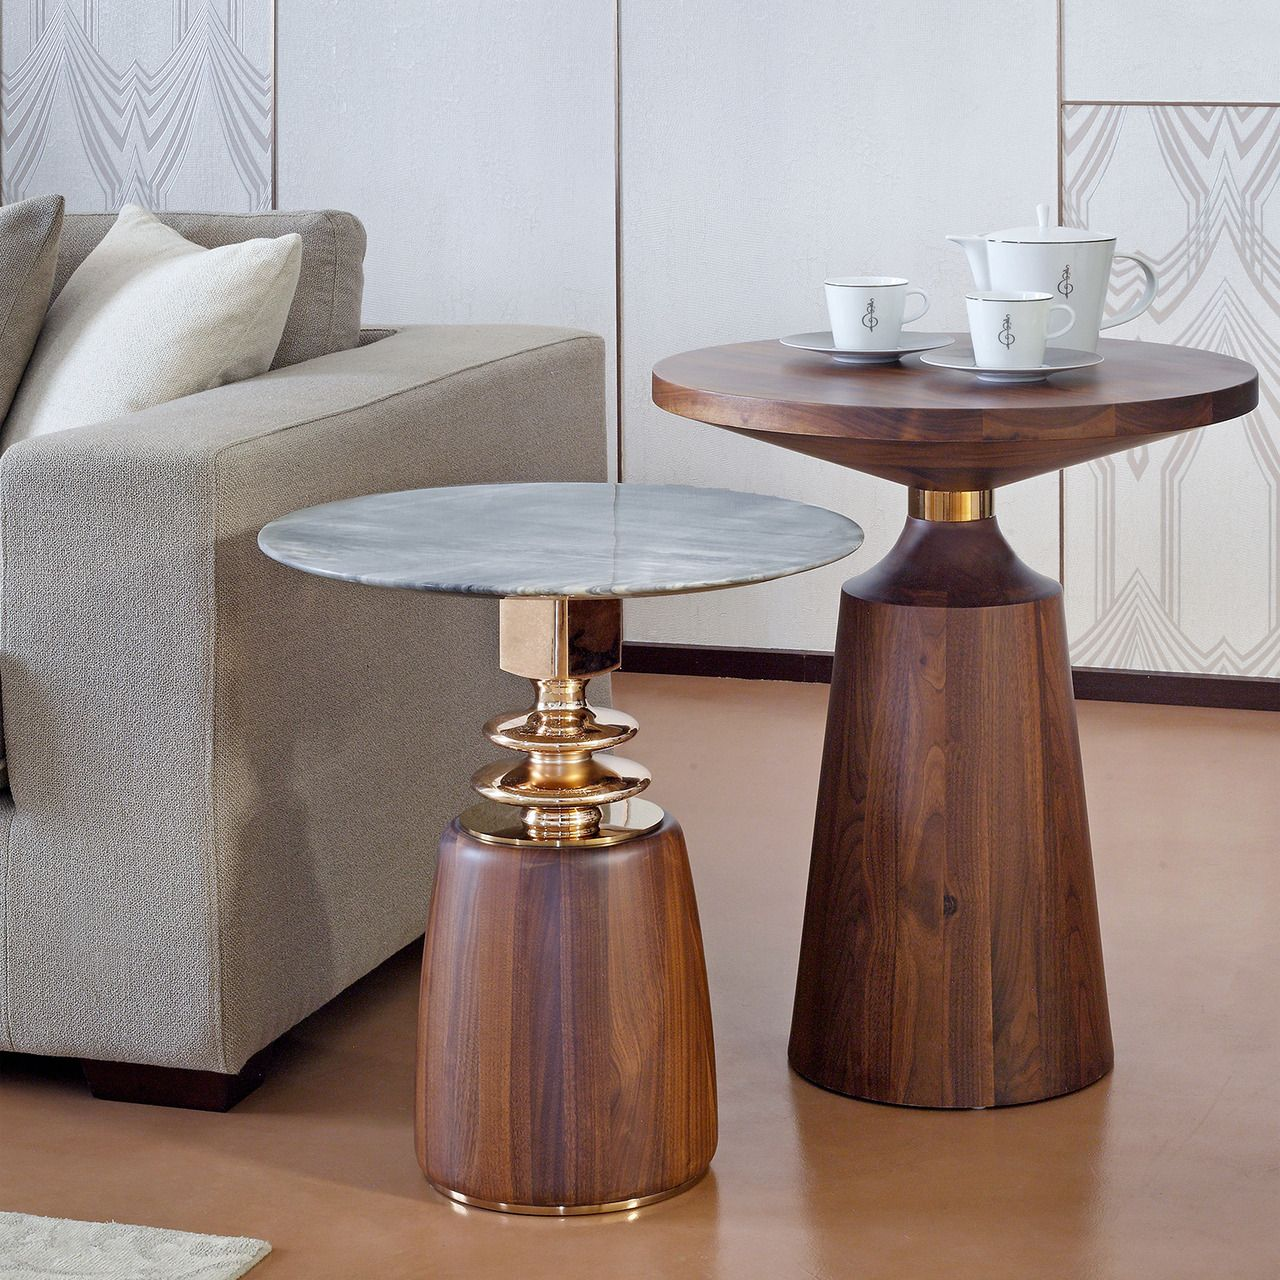 Ddhomedubai Our Famous Casa Sidetables Are Trendy And Versatile Combining Rose Gold Gr Contemporary Decor Modern House Decor Modern Home Decor Items Online [ 1280 x 1280 Pixel ]